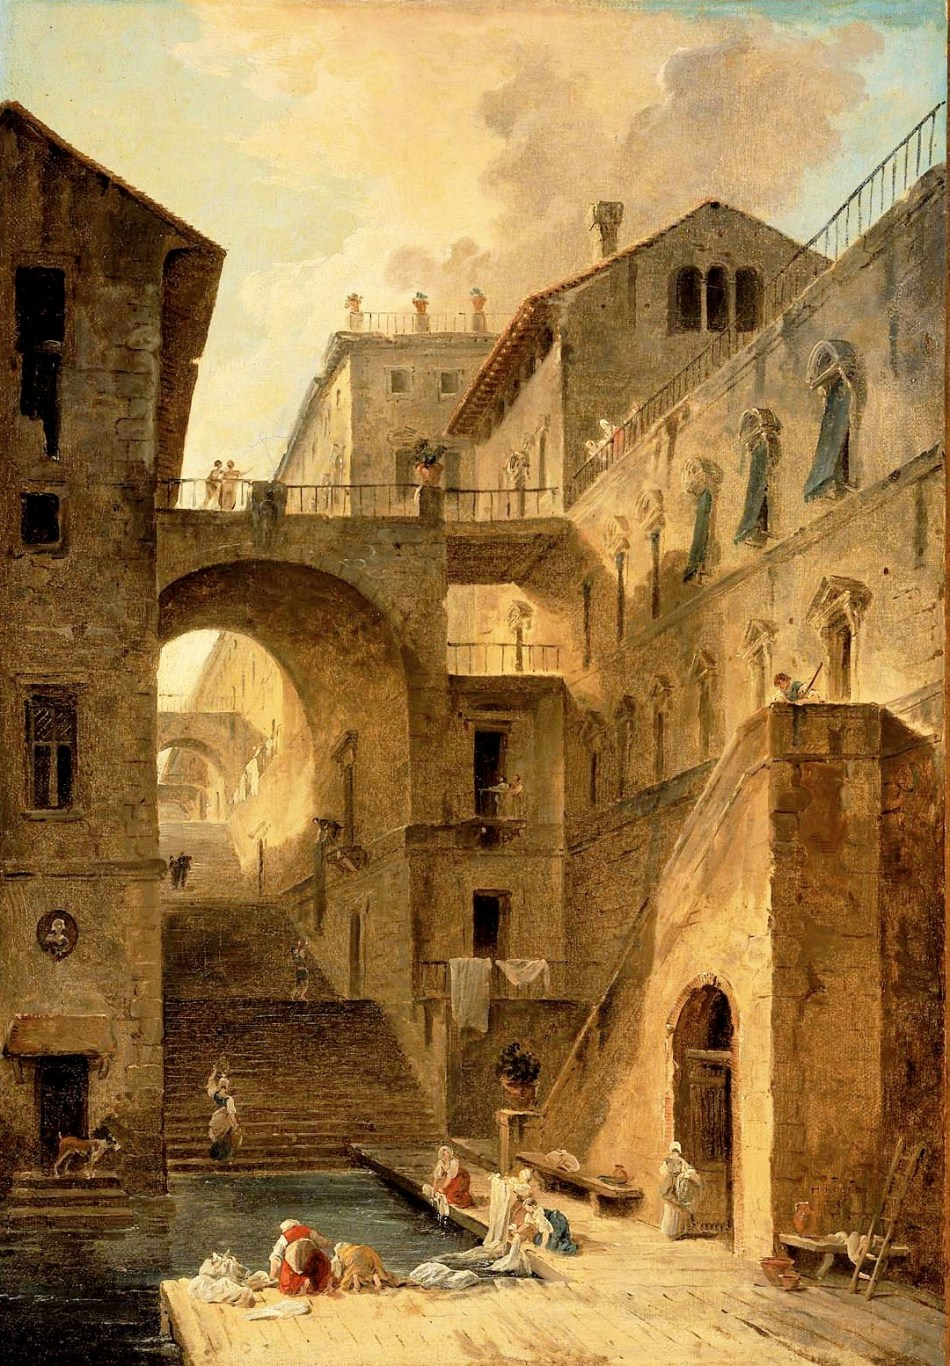 Hubert Robert – Musem of Fine Arts (Boston) 65.2653. TitleL'Escalier des Lavandieres (Stairway of the Washerwomen).  Date: 1796. Materials: oil on paper mounted on canvas. Dimensions: 60 x 41.9 cm. Inscriptions: H. ROBERT/1796 (lower right, on the wall).  Nr.: 65.2653. Source: http://www.mfa.org/collections/object/lescalier-des-lavandieres-stairway-of-the-washerwomen-33942. I have changed the light, contrast and colors of the original photo.